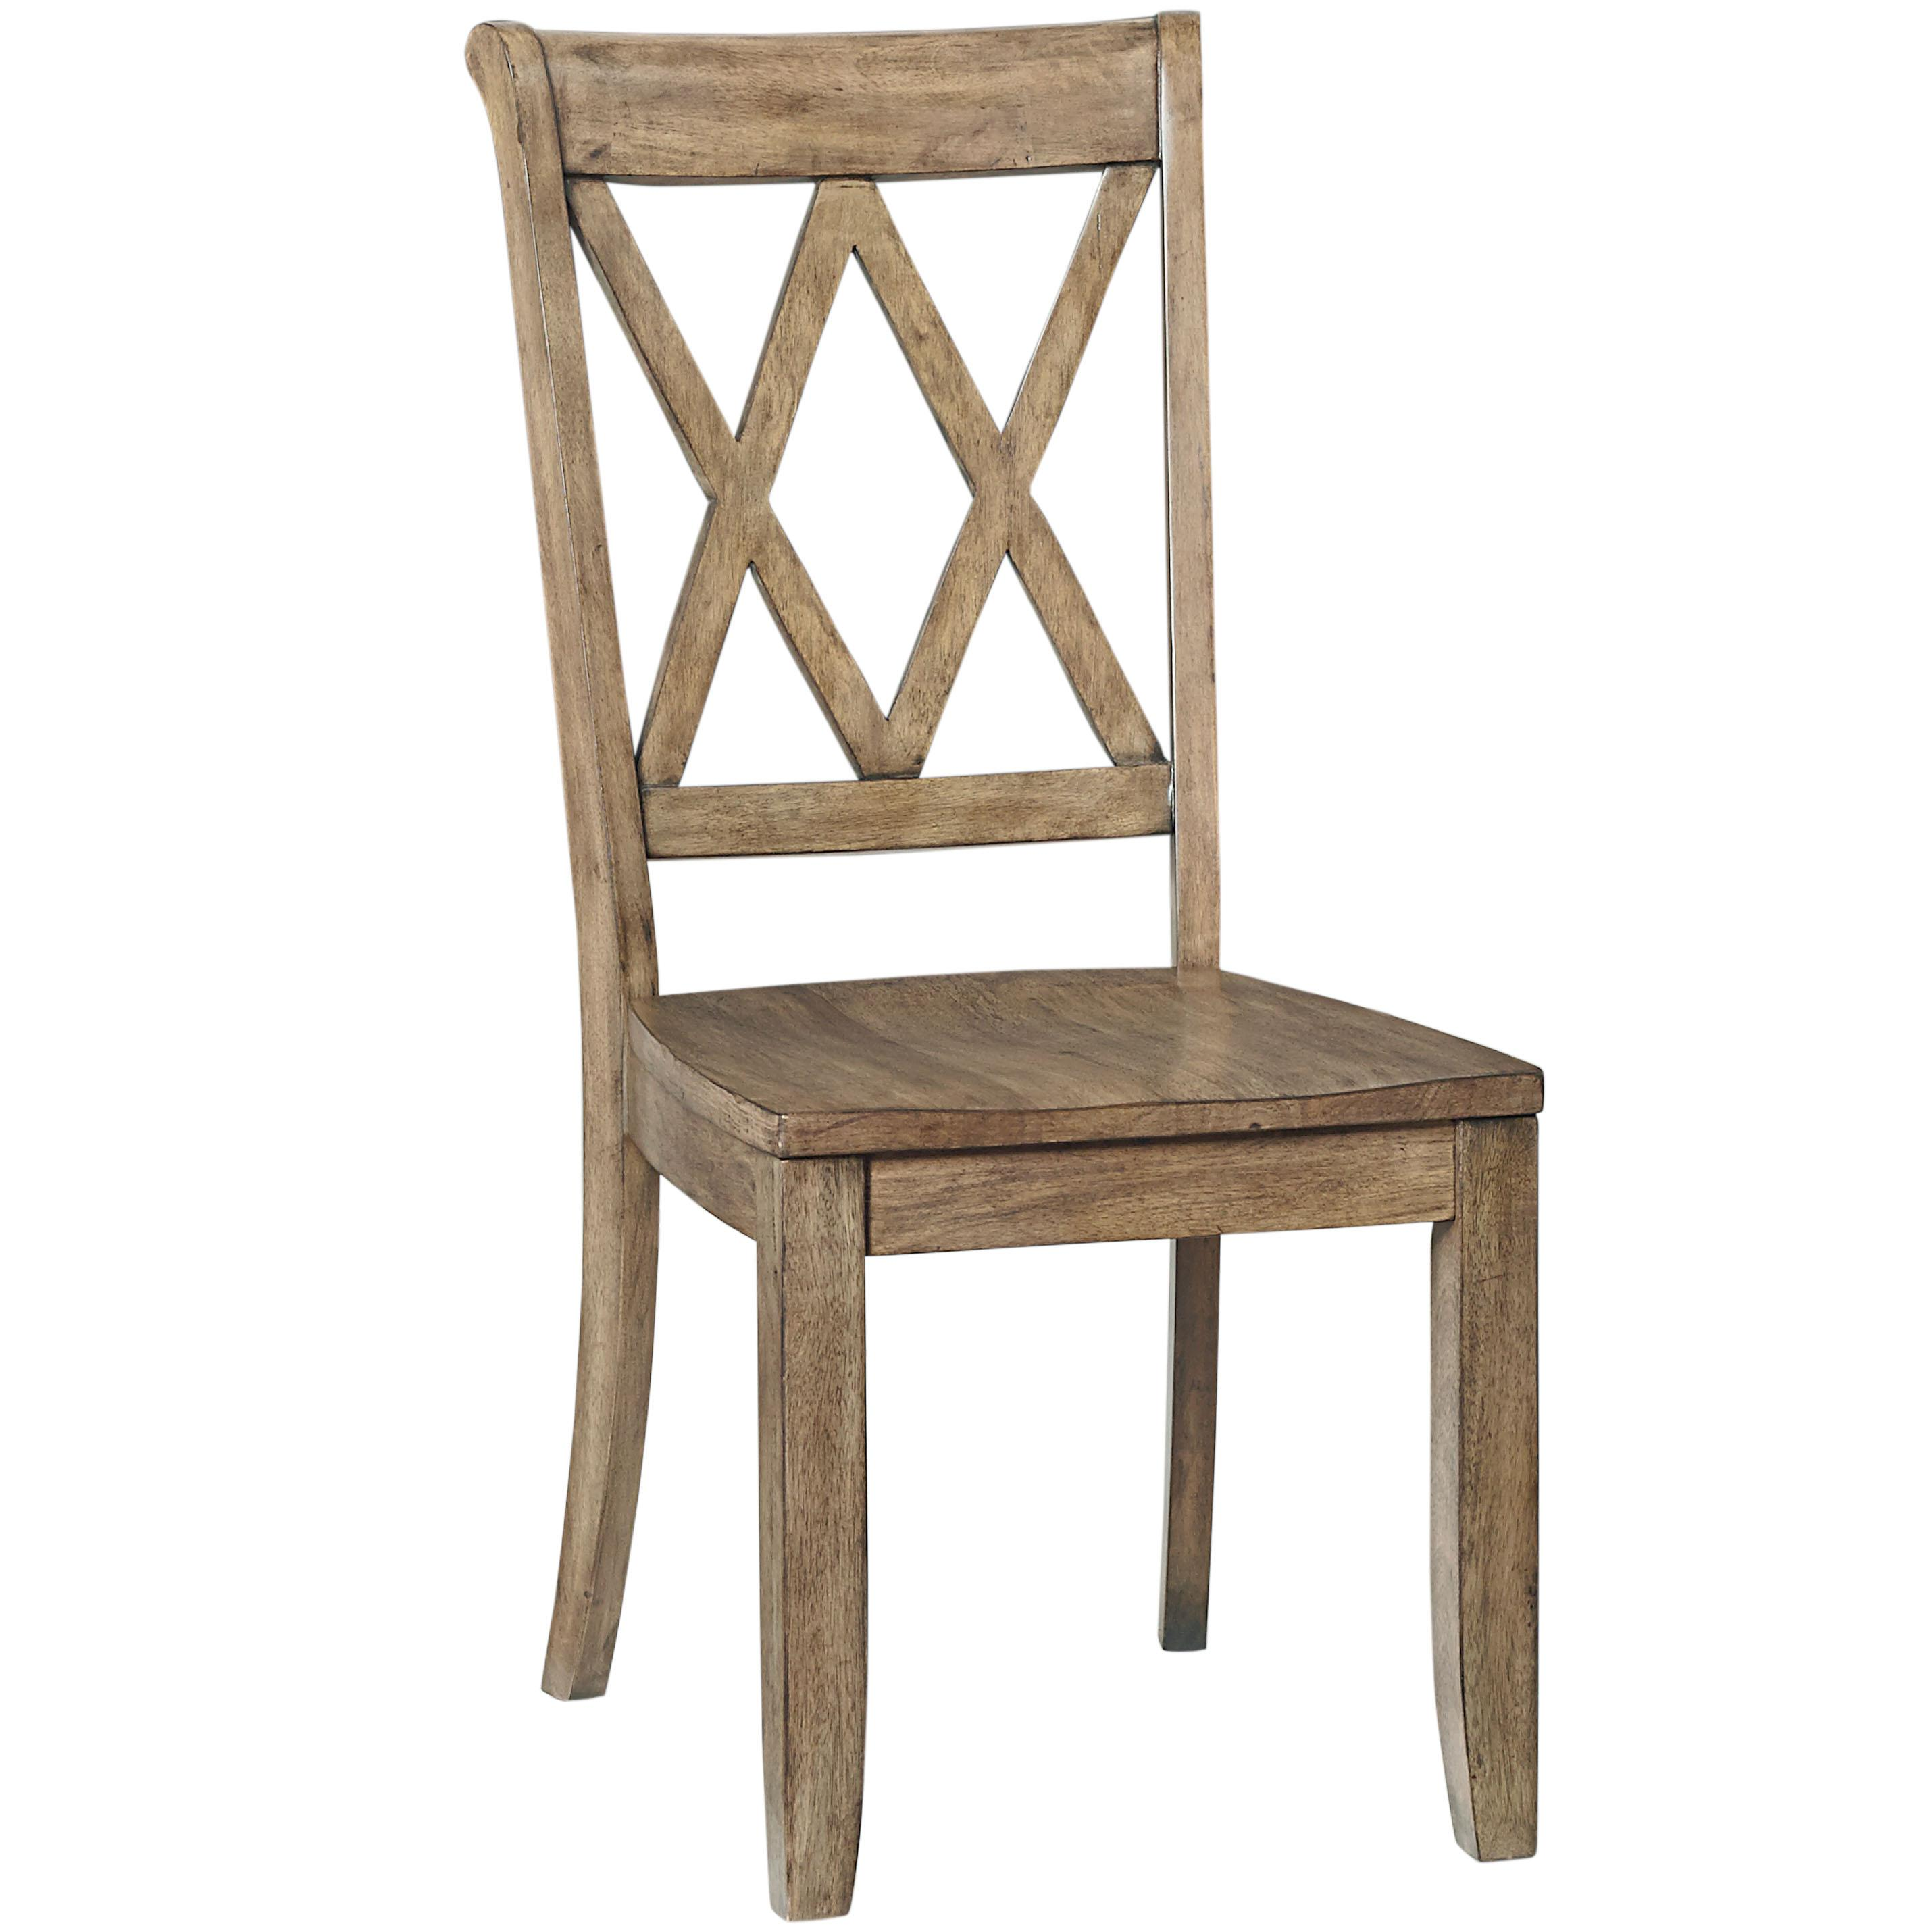 Standard Furniture Vintage Dining Side Chair - Item Number: 11307